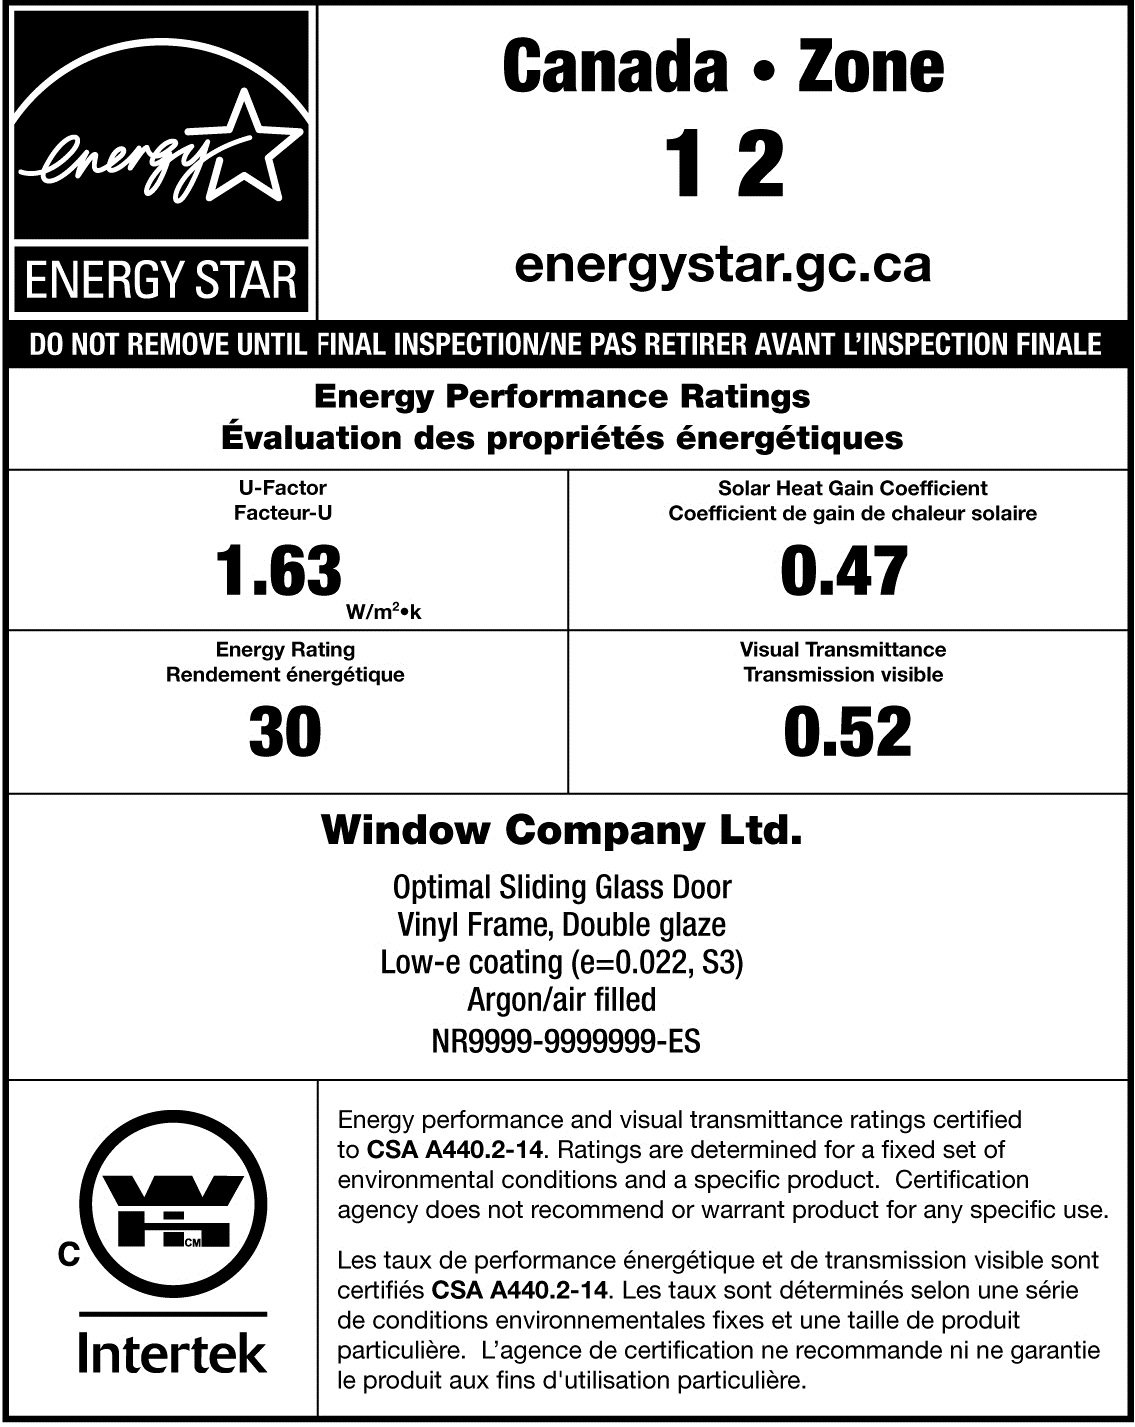 Sample ENERGY STAR / NRCan temporary label for a sliding glass door. The ENERGY STAR portion has an ENERGY STAR certification mark and text indicating that the product is certified for Zones 1 and 2. The NRCan portion has an Intertek / Warnock Hersey certification mark and the product's specific performance ratings, brand name and model description.